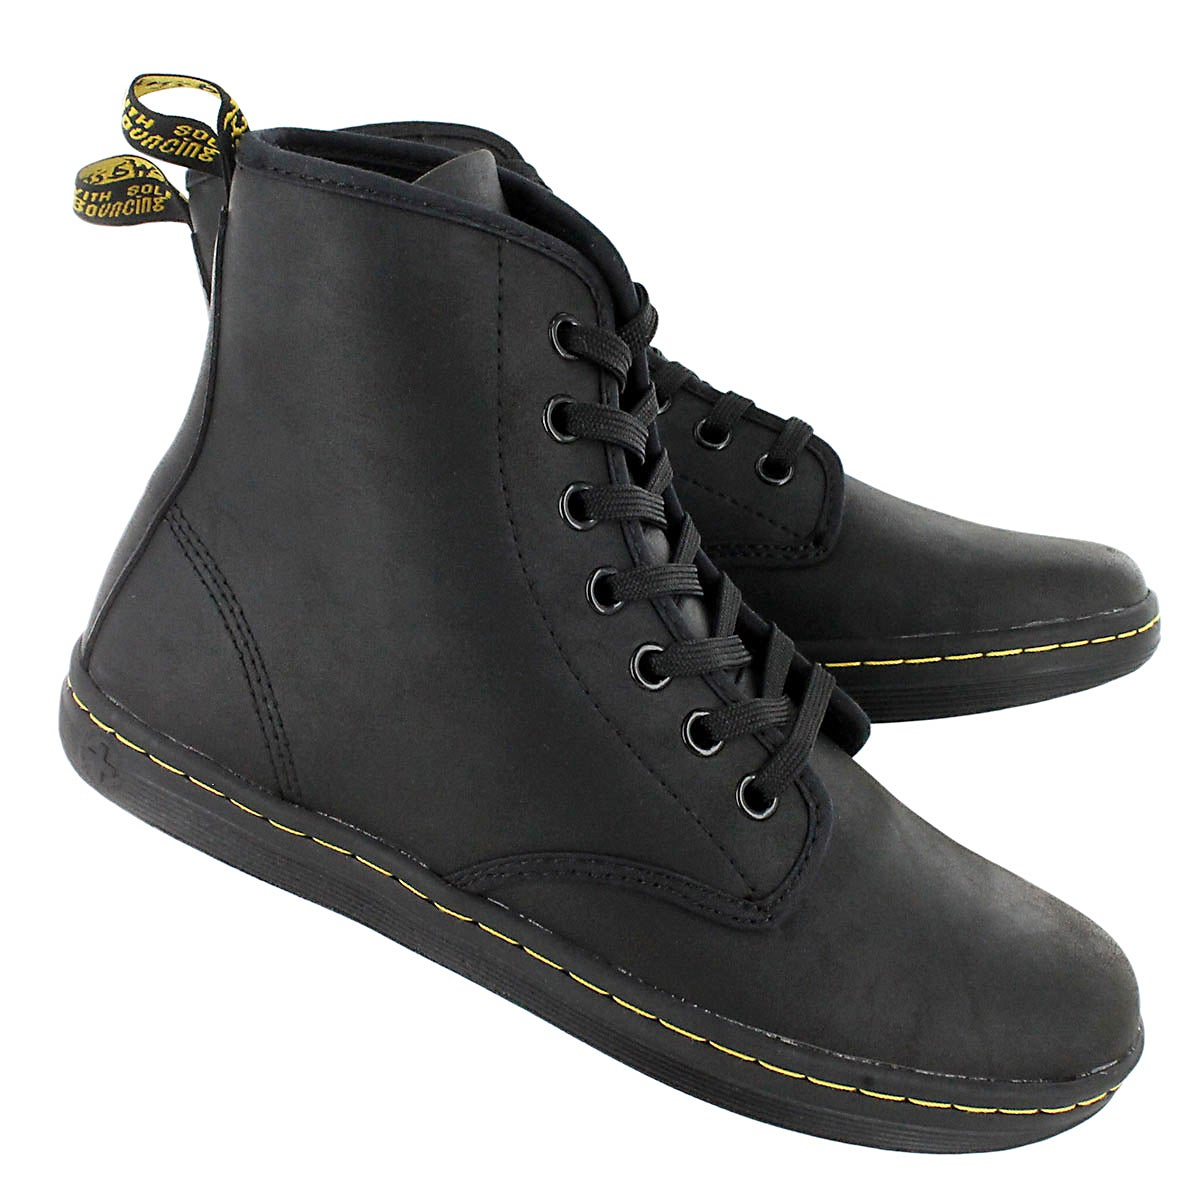 Lds Shoreditch black leather mid boot